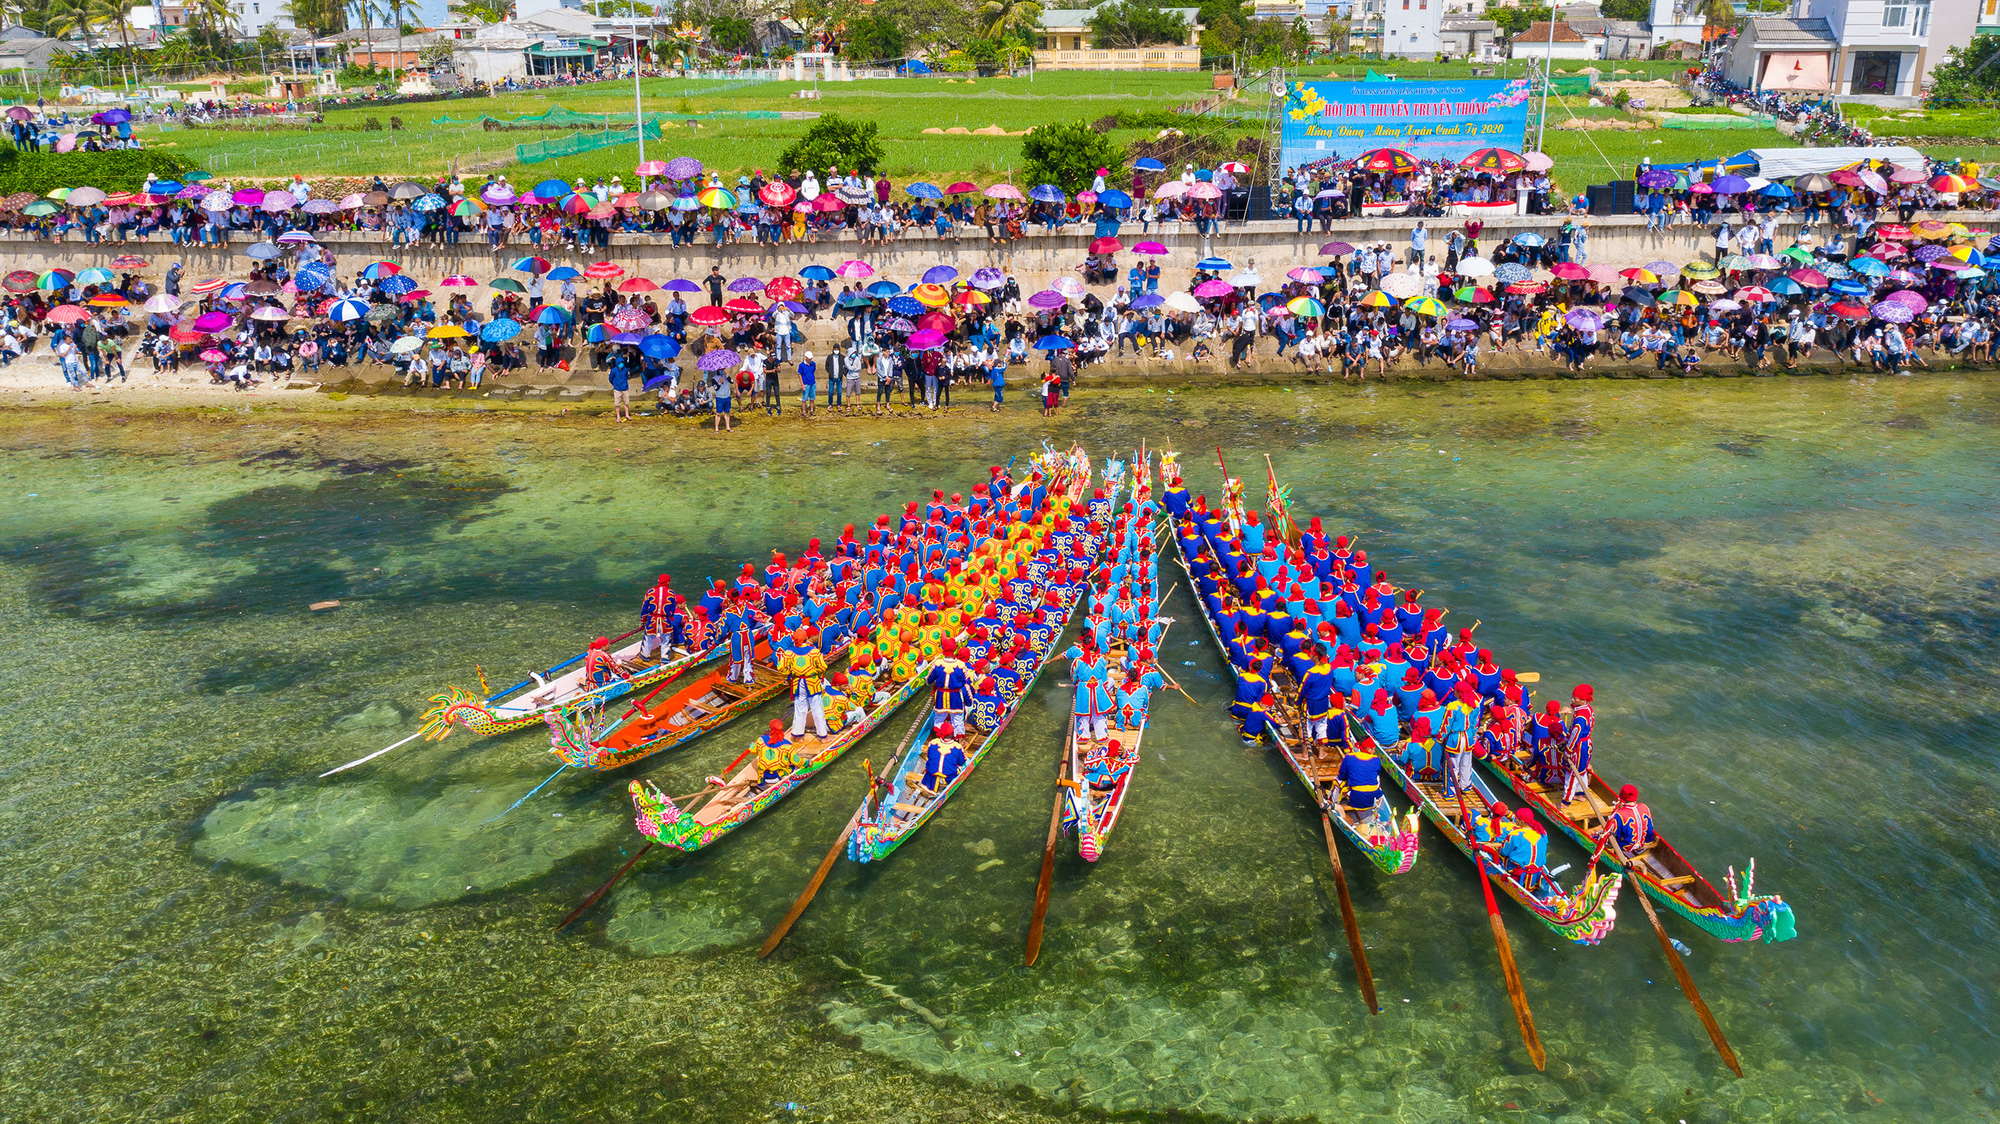 Island district's century-old boat racing festival becomes Vietnam's national heritage